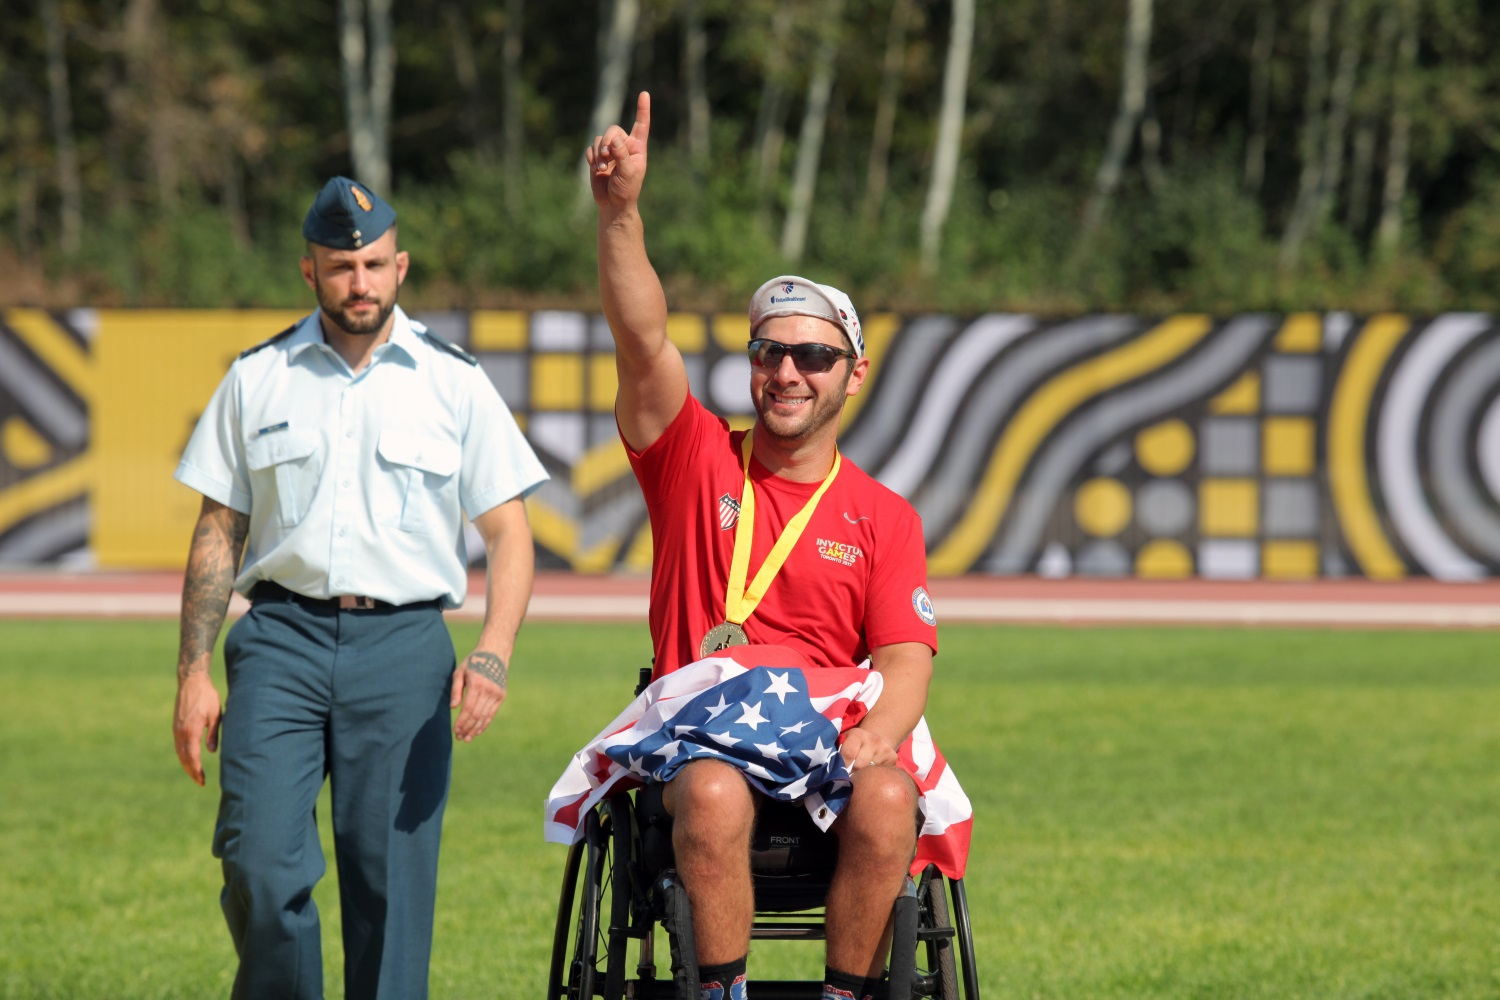 U.S. Navy veteran Nathan Dewalt places gold at the Invictus Games' track event, at York Lions Stadium in Toronto, Canada, on Sept. 24, 2017. (Staff Sgt. Daniel Luksan/Army)